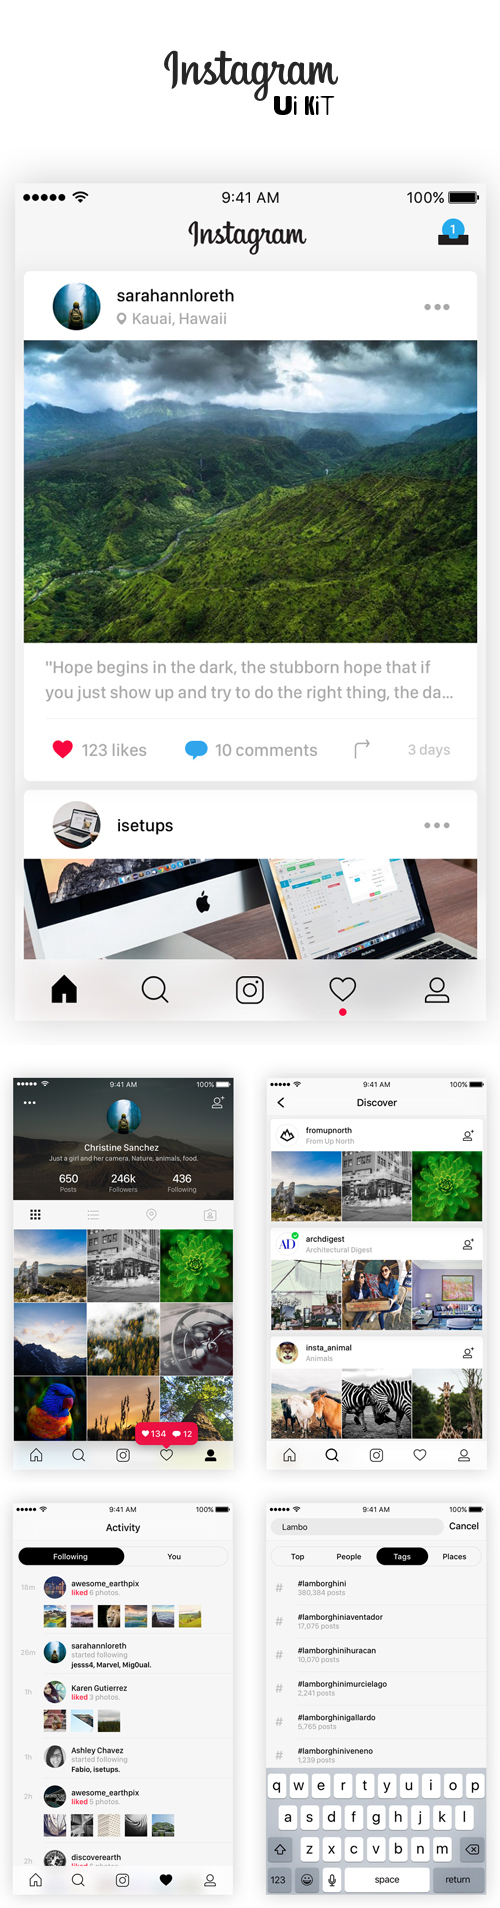 Free Instagram UI Kit